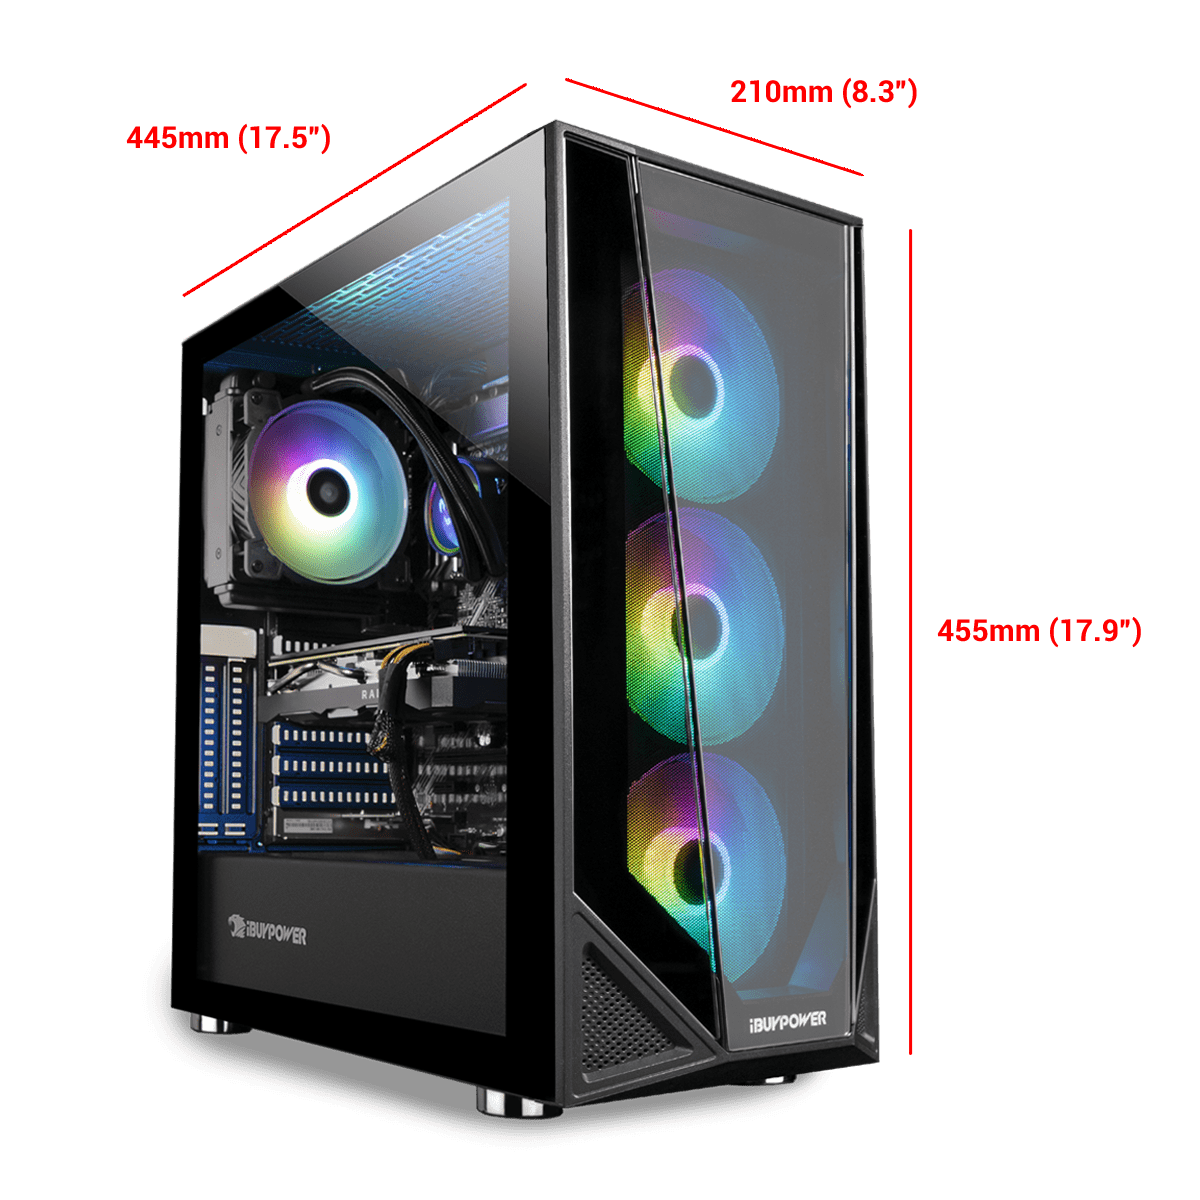 gaming-pc-09-trace4mr-dimensions-1200.png (1200×1200)